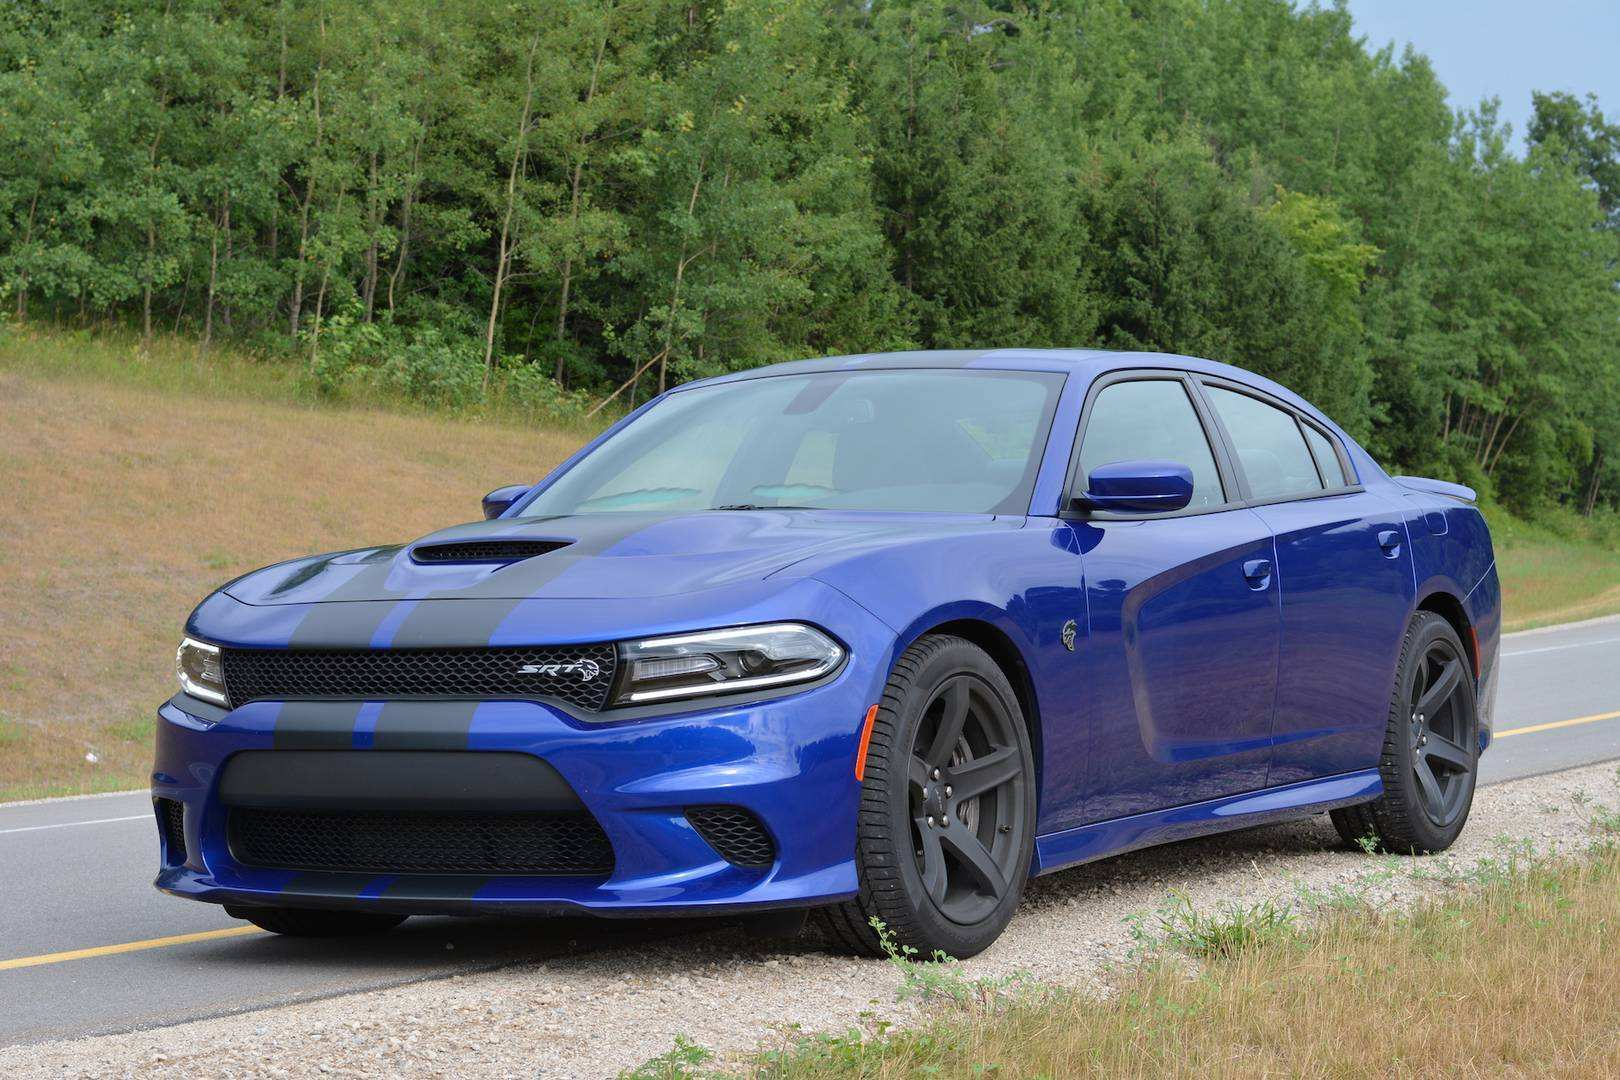 46 A 2019 Dodge Charger SRT8 Interior